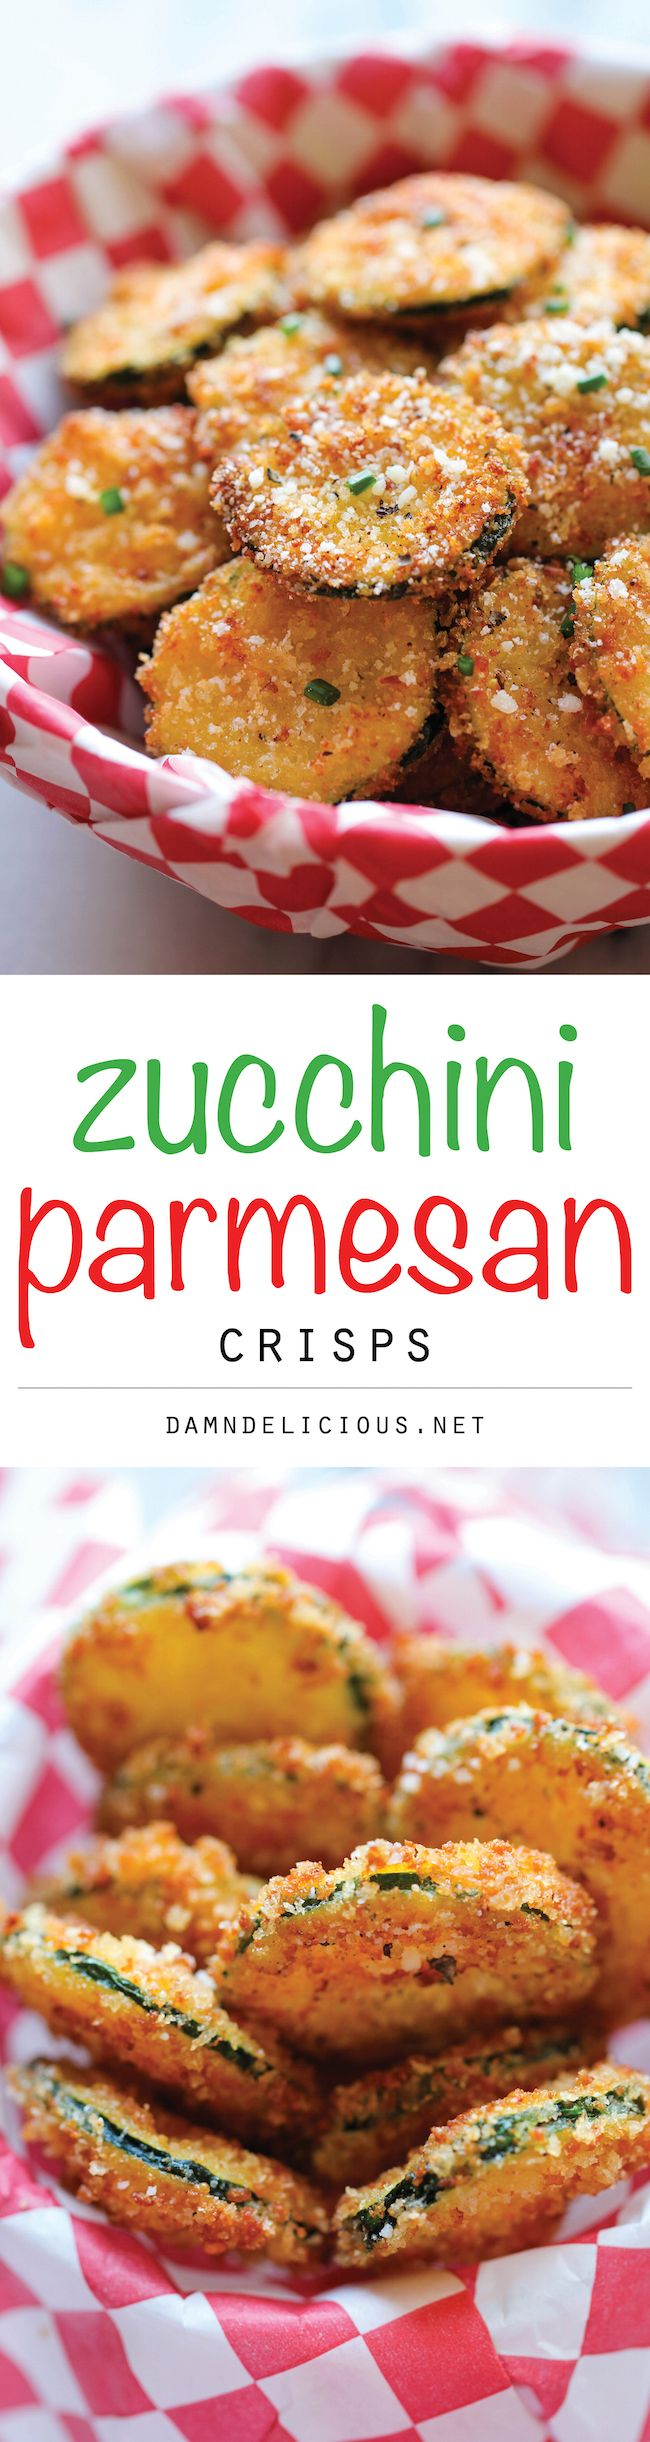 Zucchini Parmesan Crisps - A healthy snack thats incredibly crunchy, crispy and addicting!